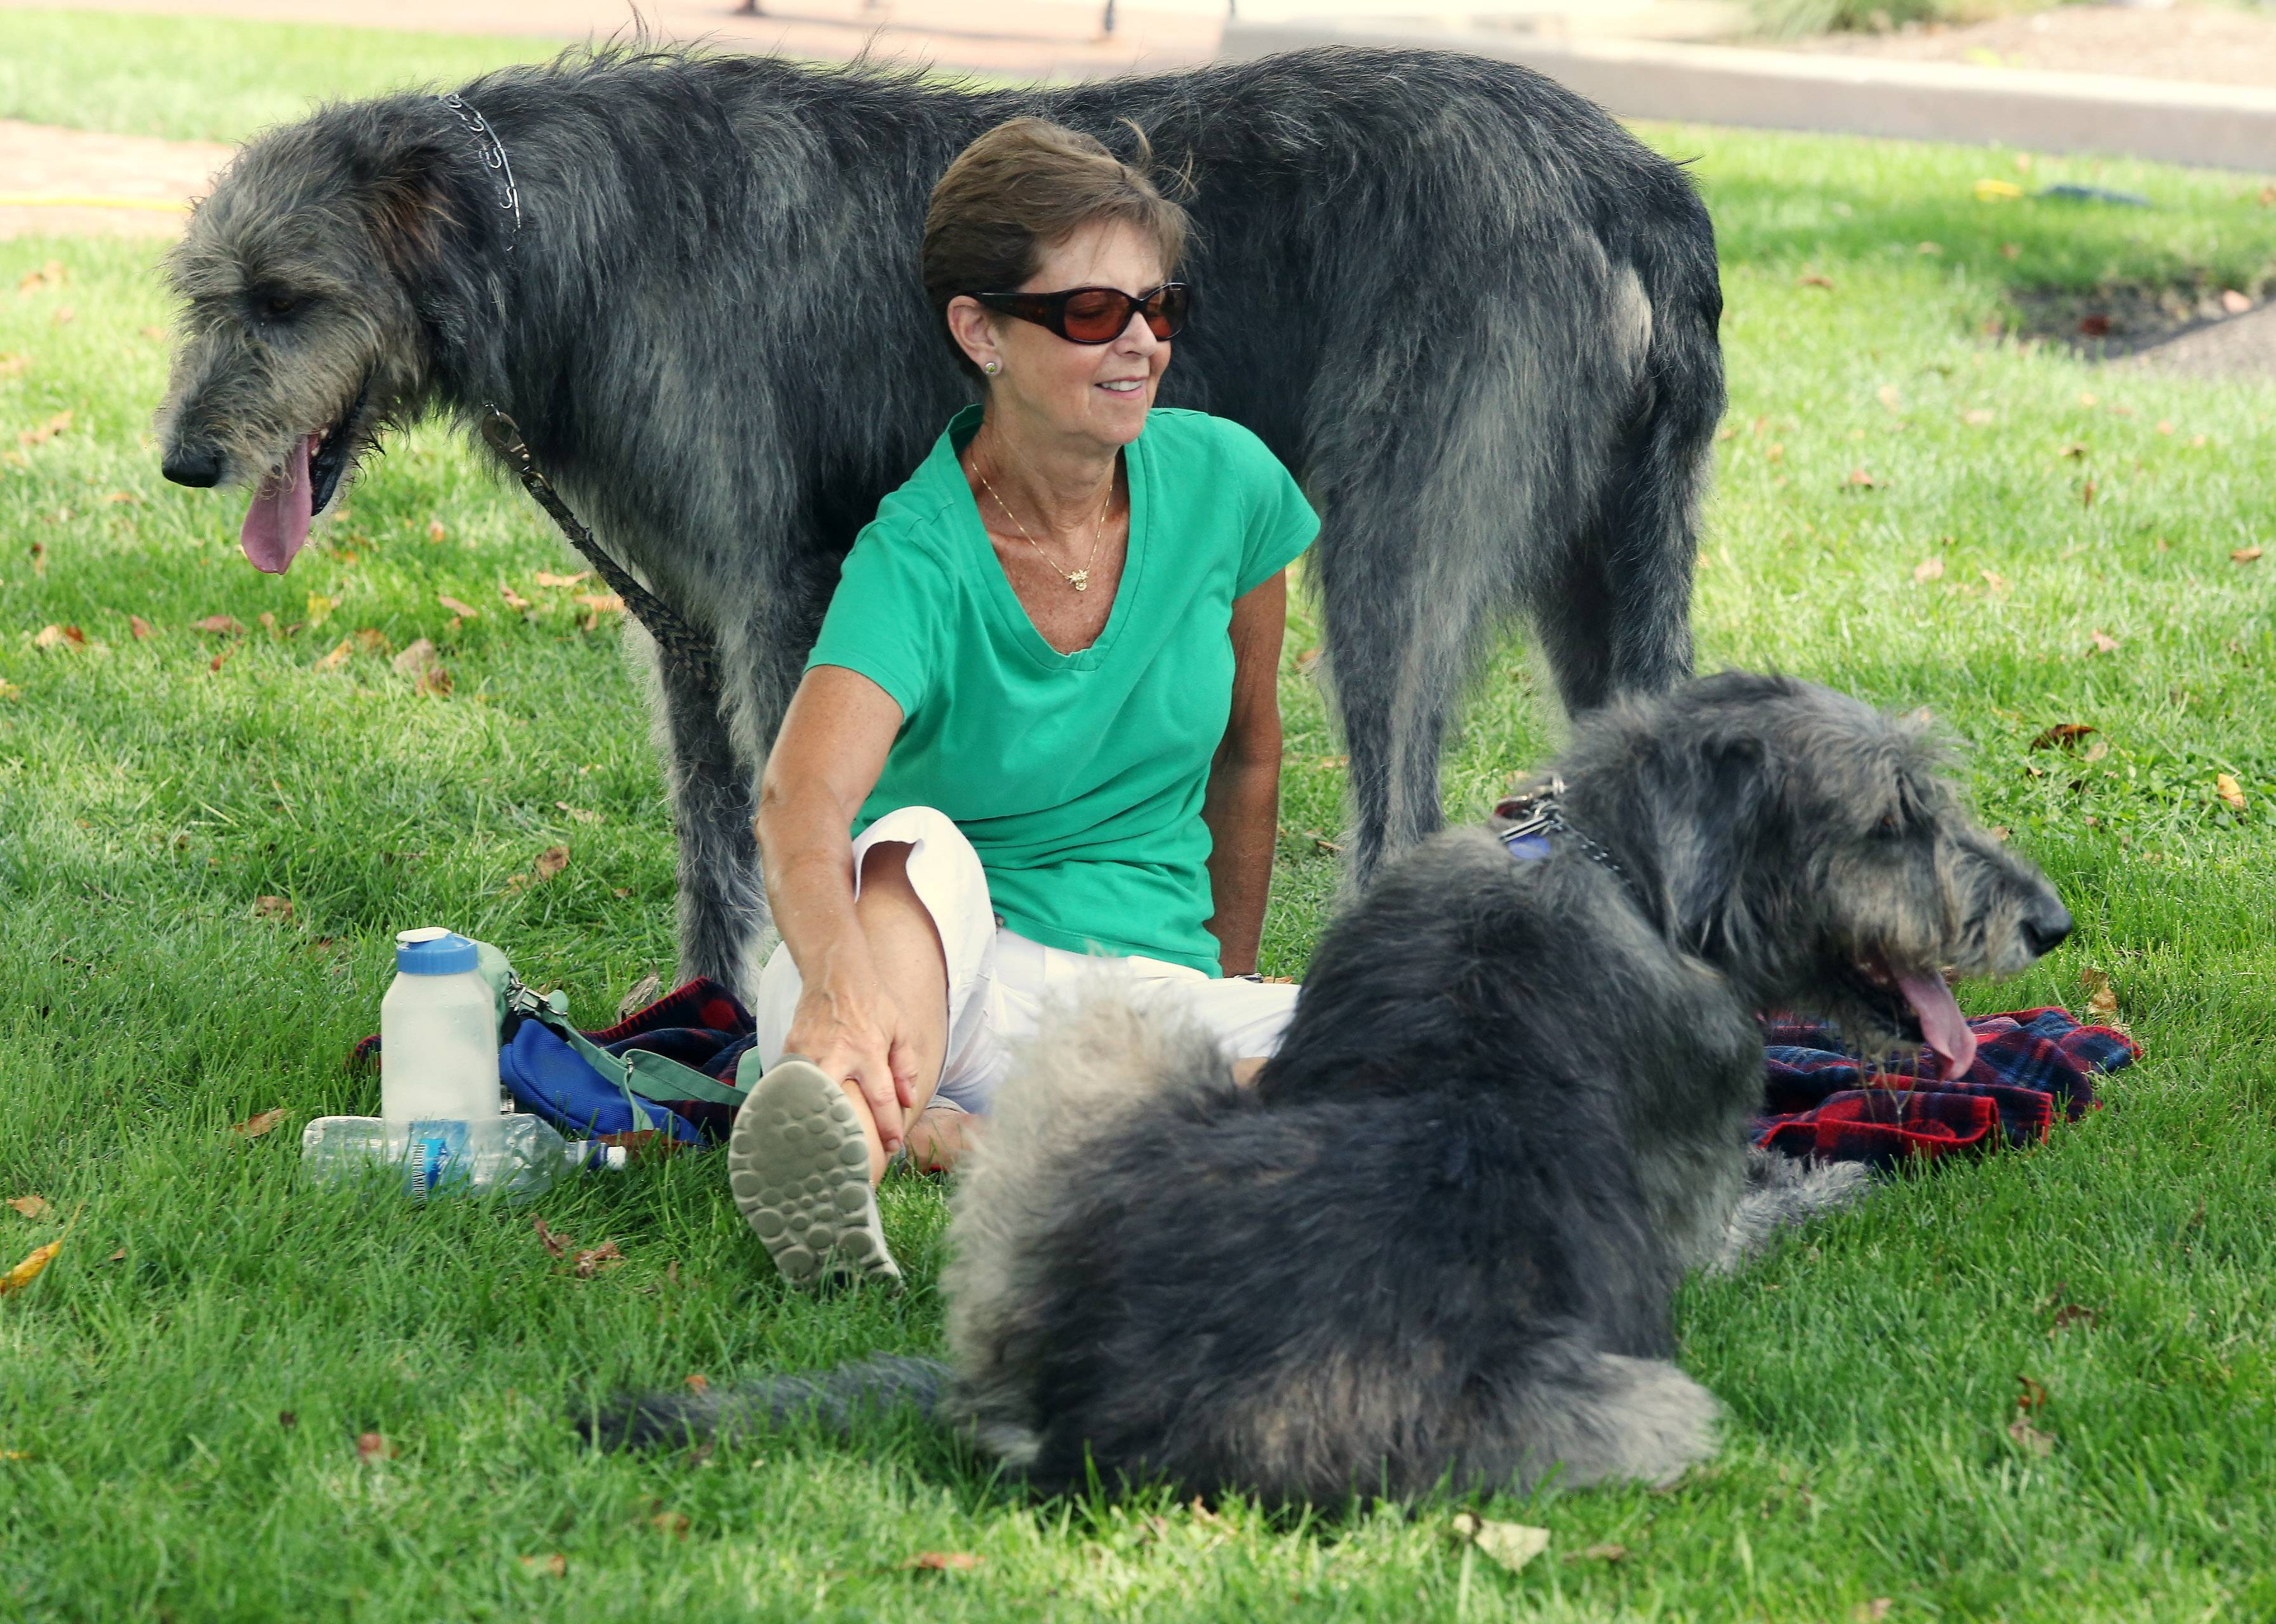 Gail Ryan of Geneva sits with her Irish Wolfhounds, Callie and Shealan, as they listen to Irish music Sunday during the Long Grove Irish Days Festival Sunday in the village's historic downtown. The festival featured live music, Irish dancers, a men-in-kilts competition and more.